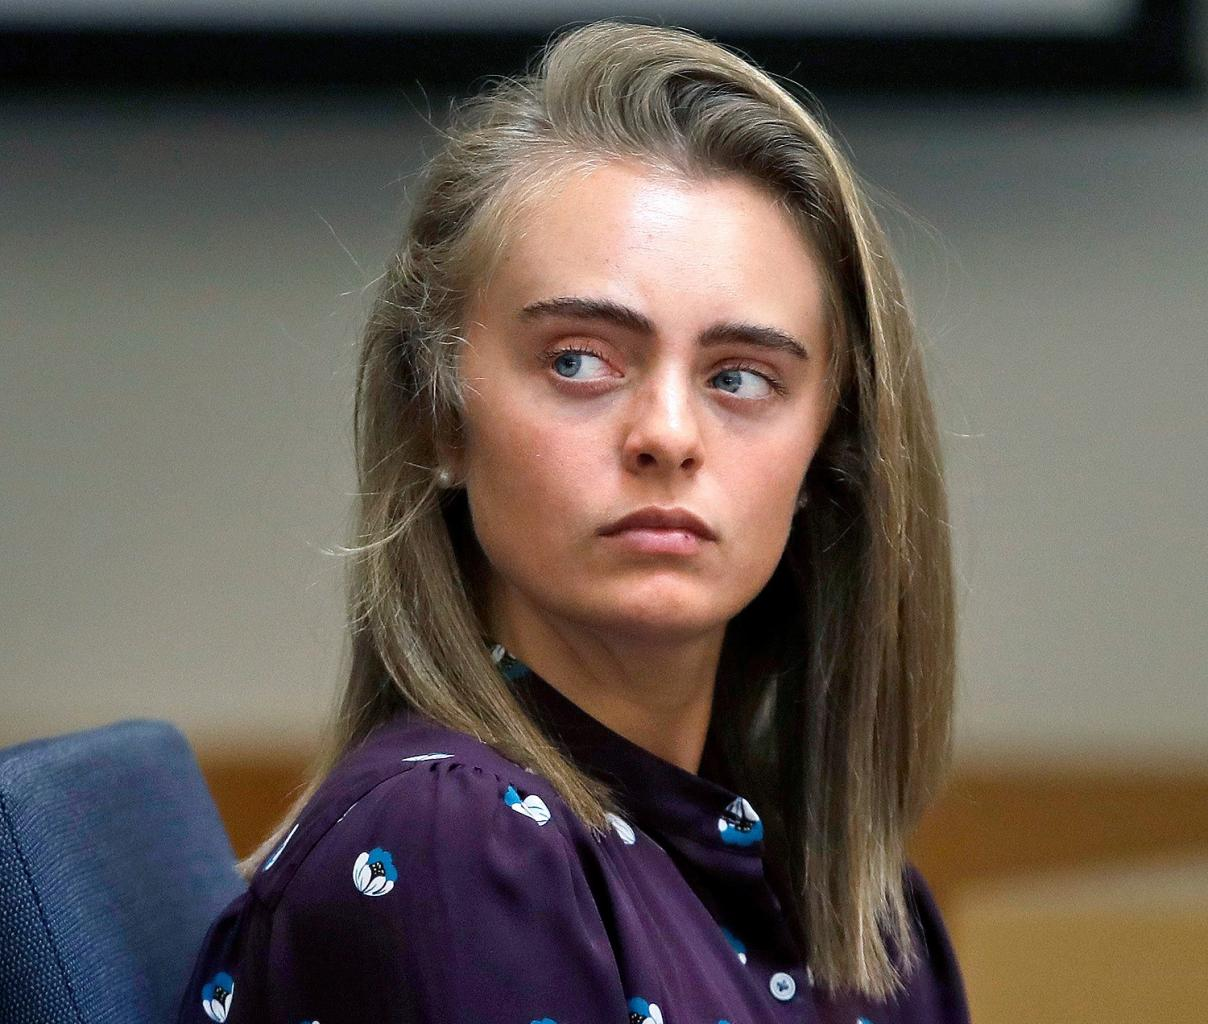 She        Has a Damaged Moral Core       ': Conrad Roy       's Aunt Says Michelle Carter Had Asked for His Ashes at His    Wake